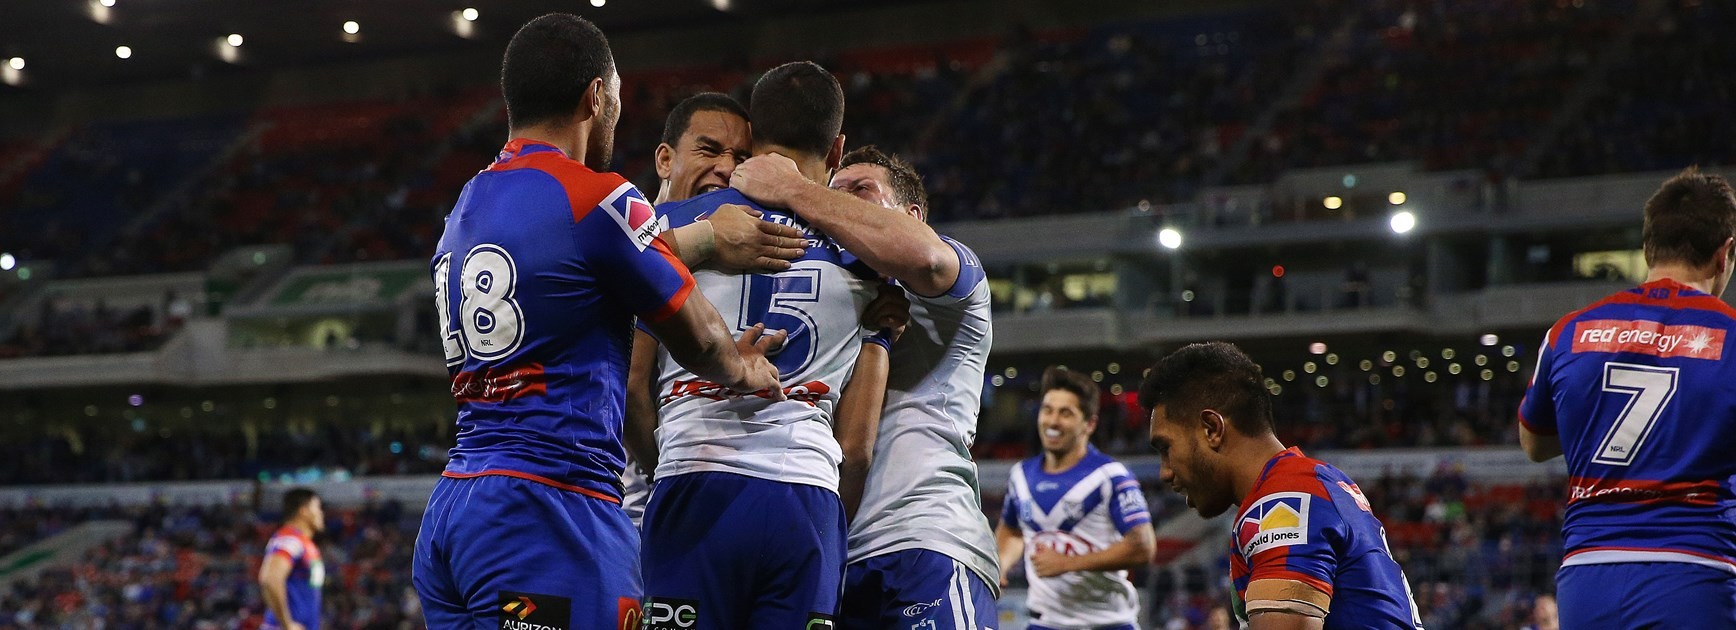 Bulldogs hungry for hat-trick of wins